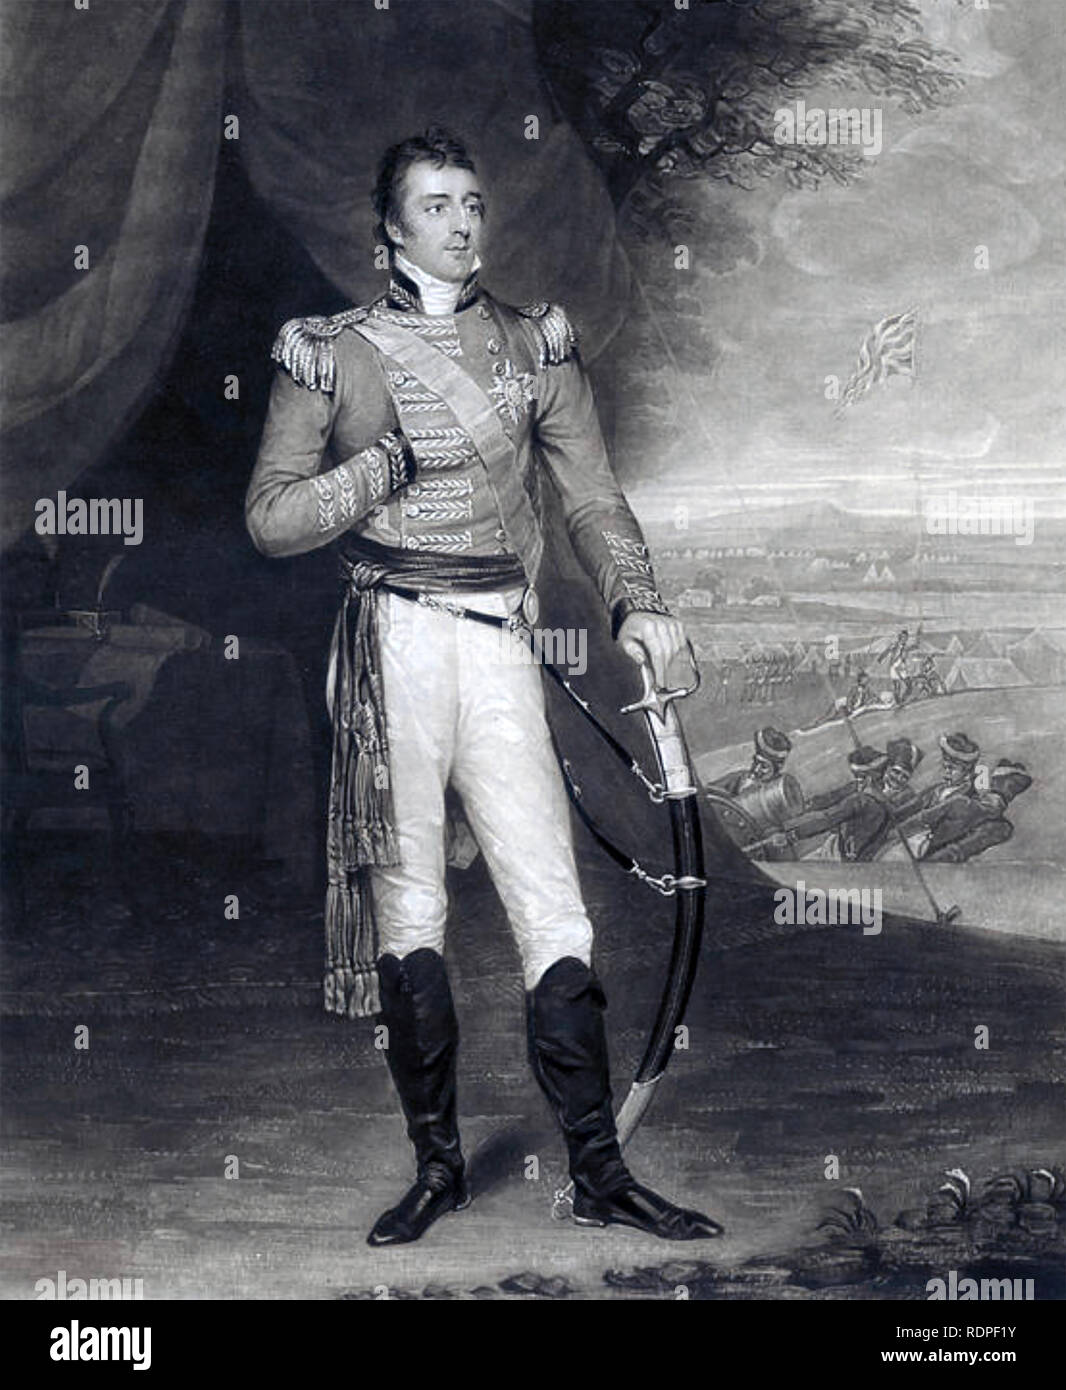 ARTHUR WELLESLEY, 1st Duke of Wellington (1769-1852) as a General about 1803 - Stock Image